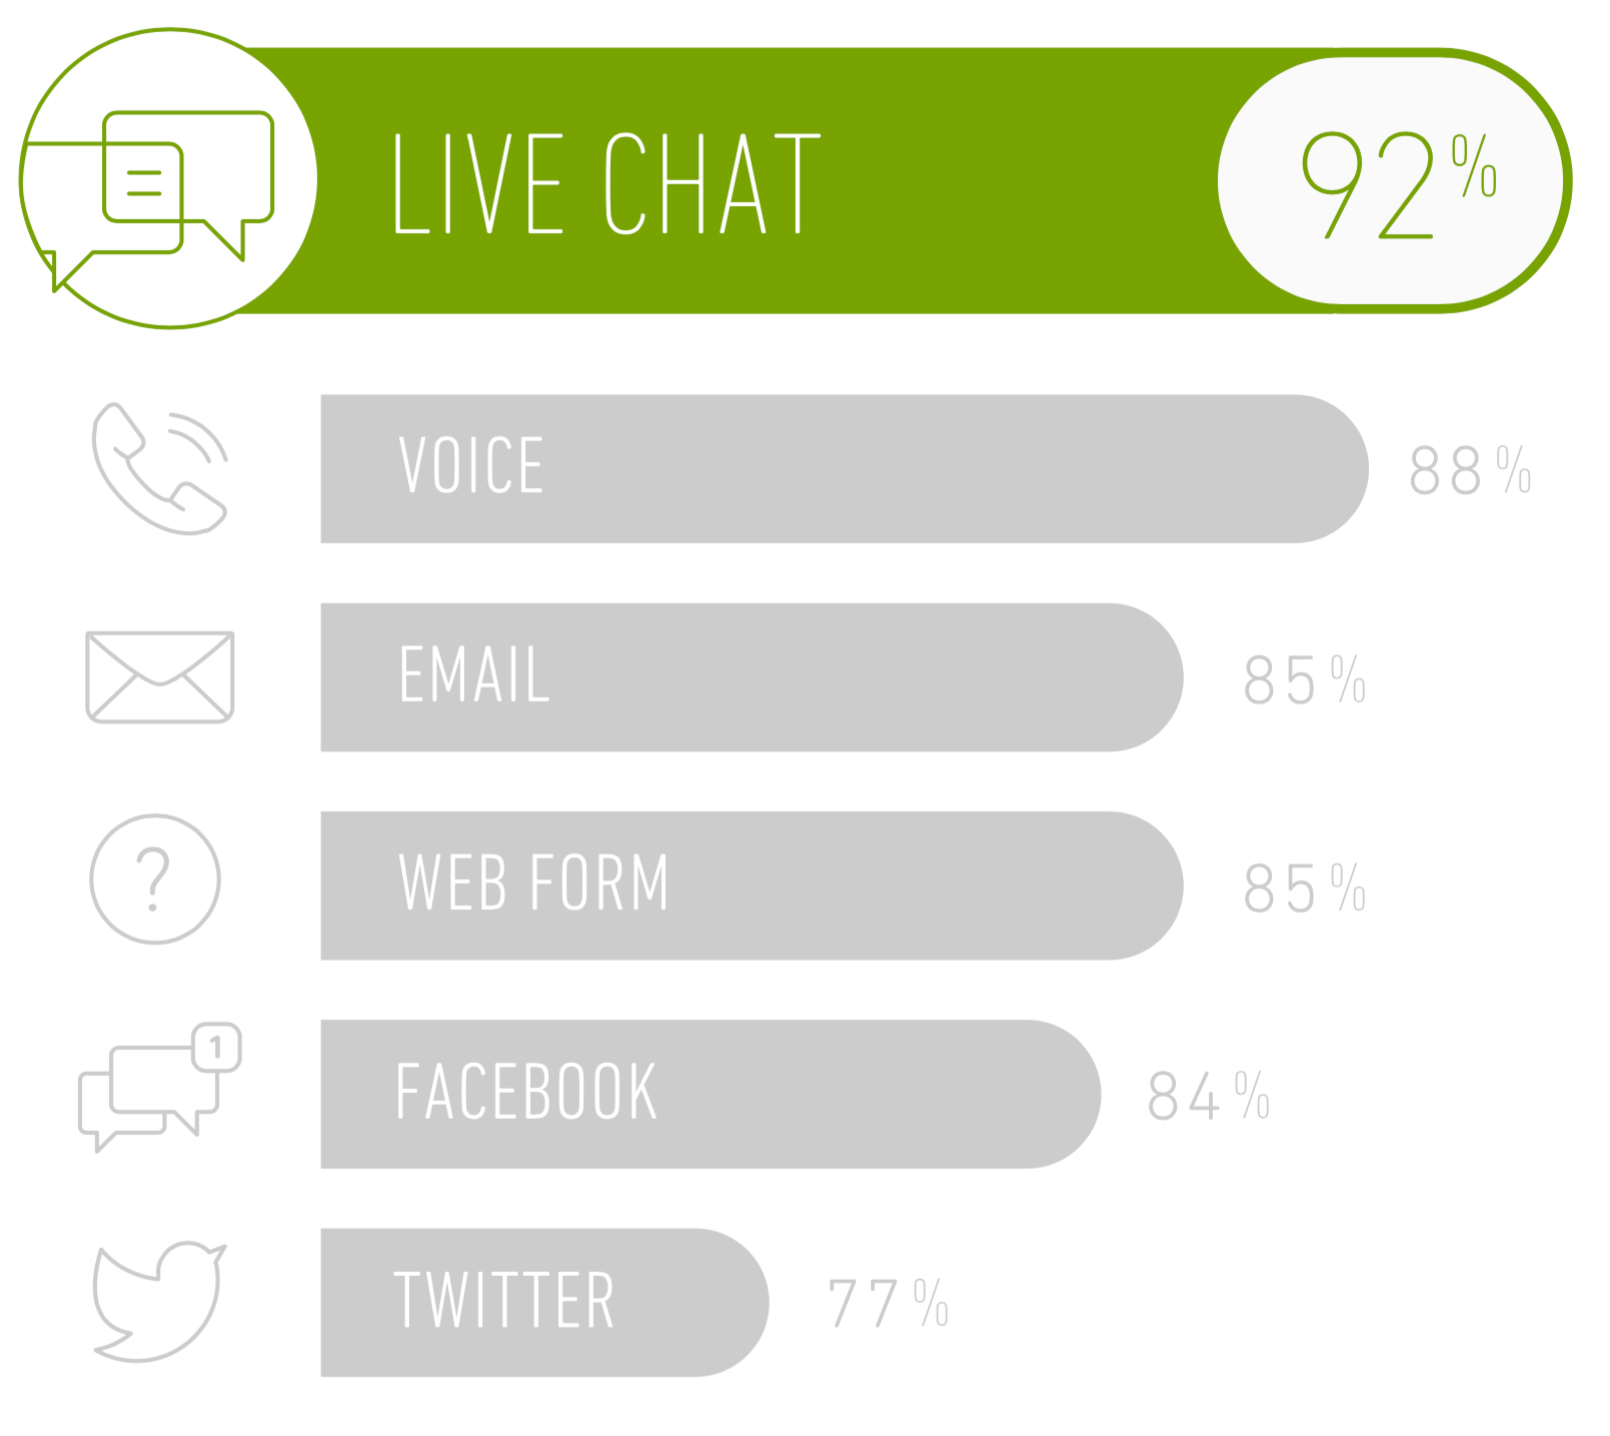 Roll out live chat and provide proactive customer service | Relate ...